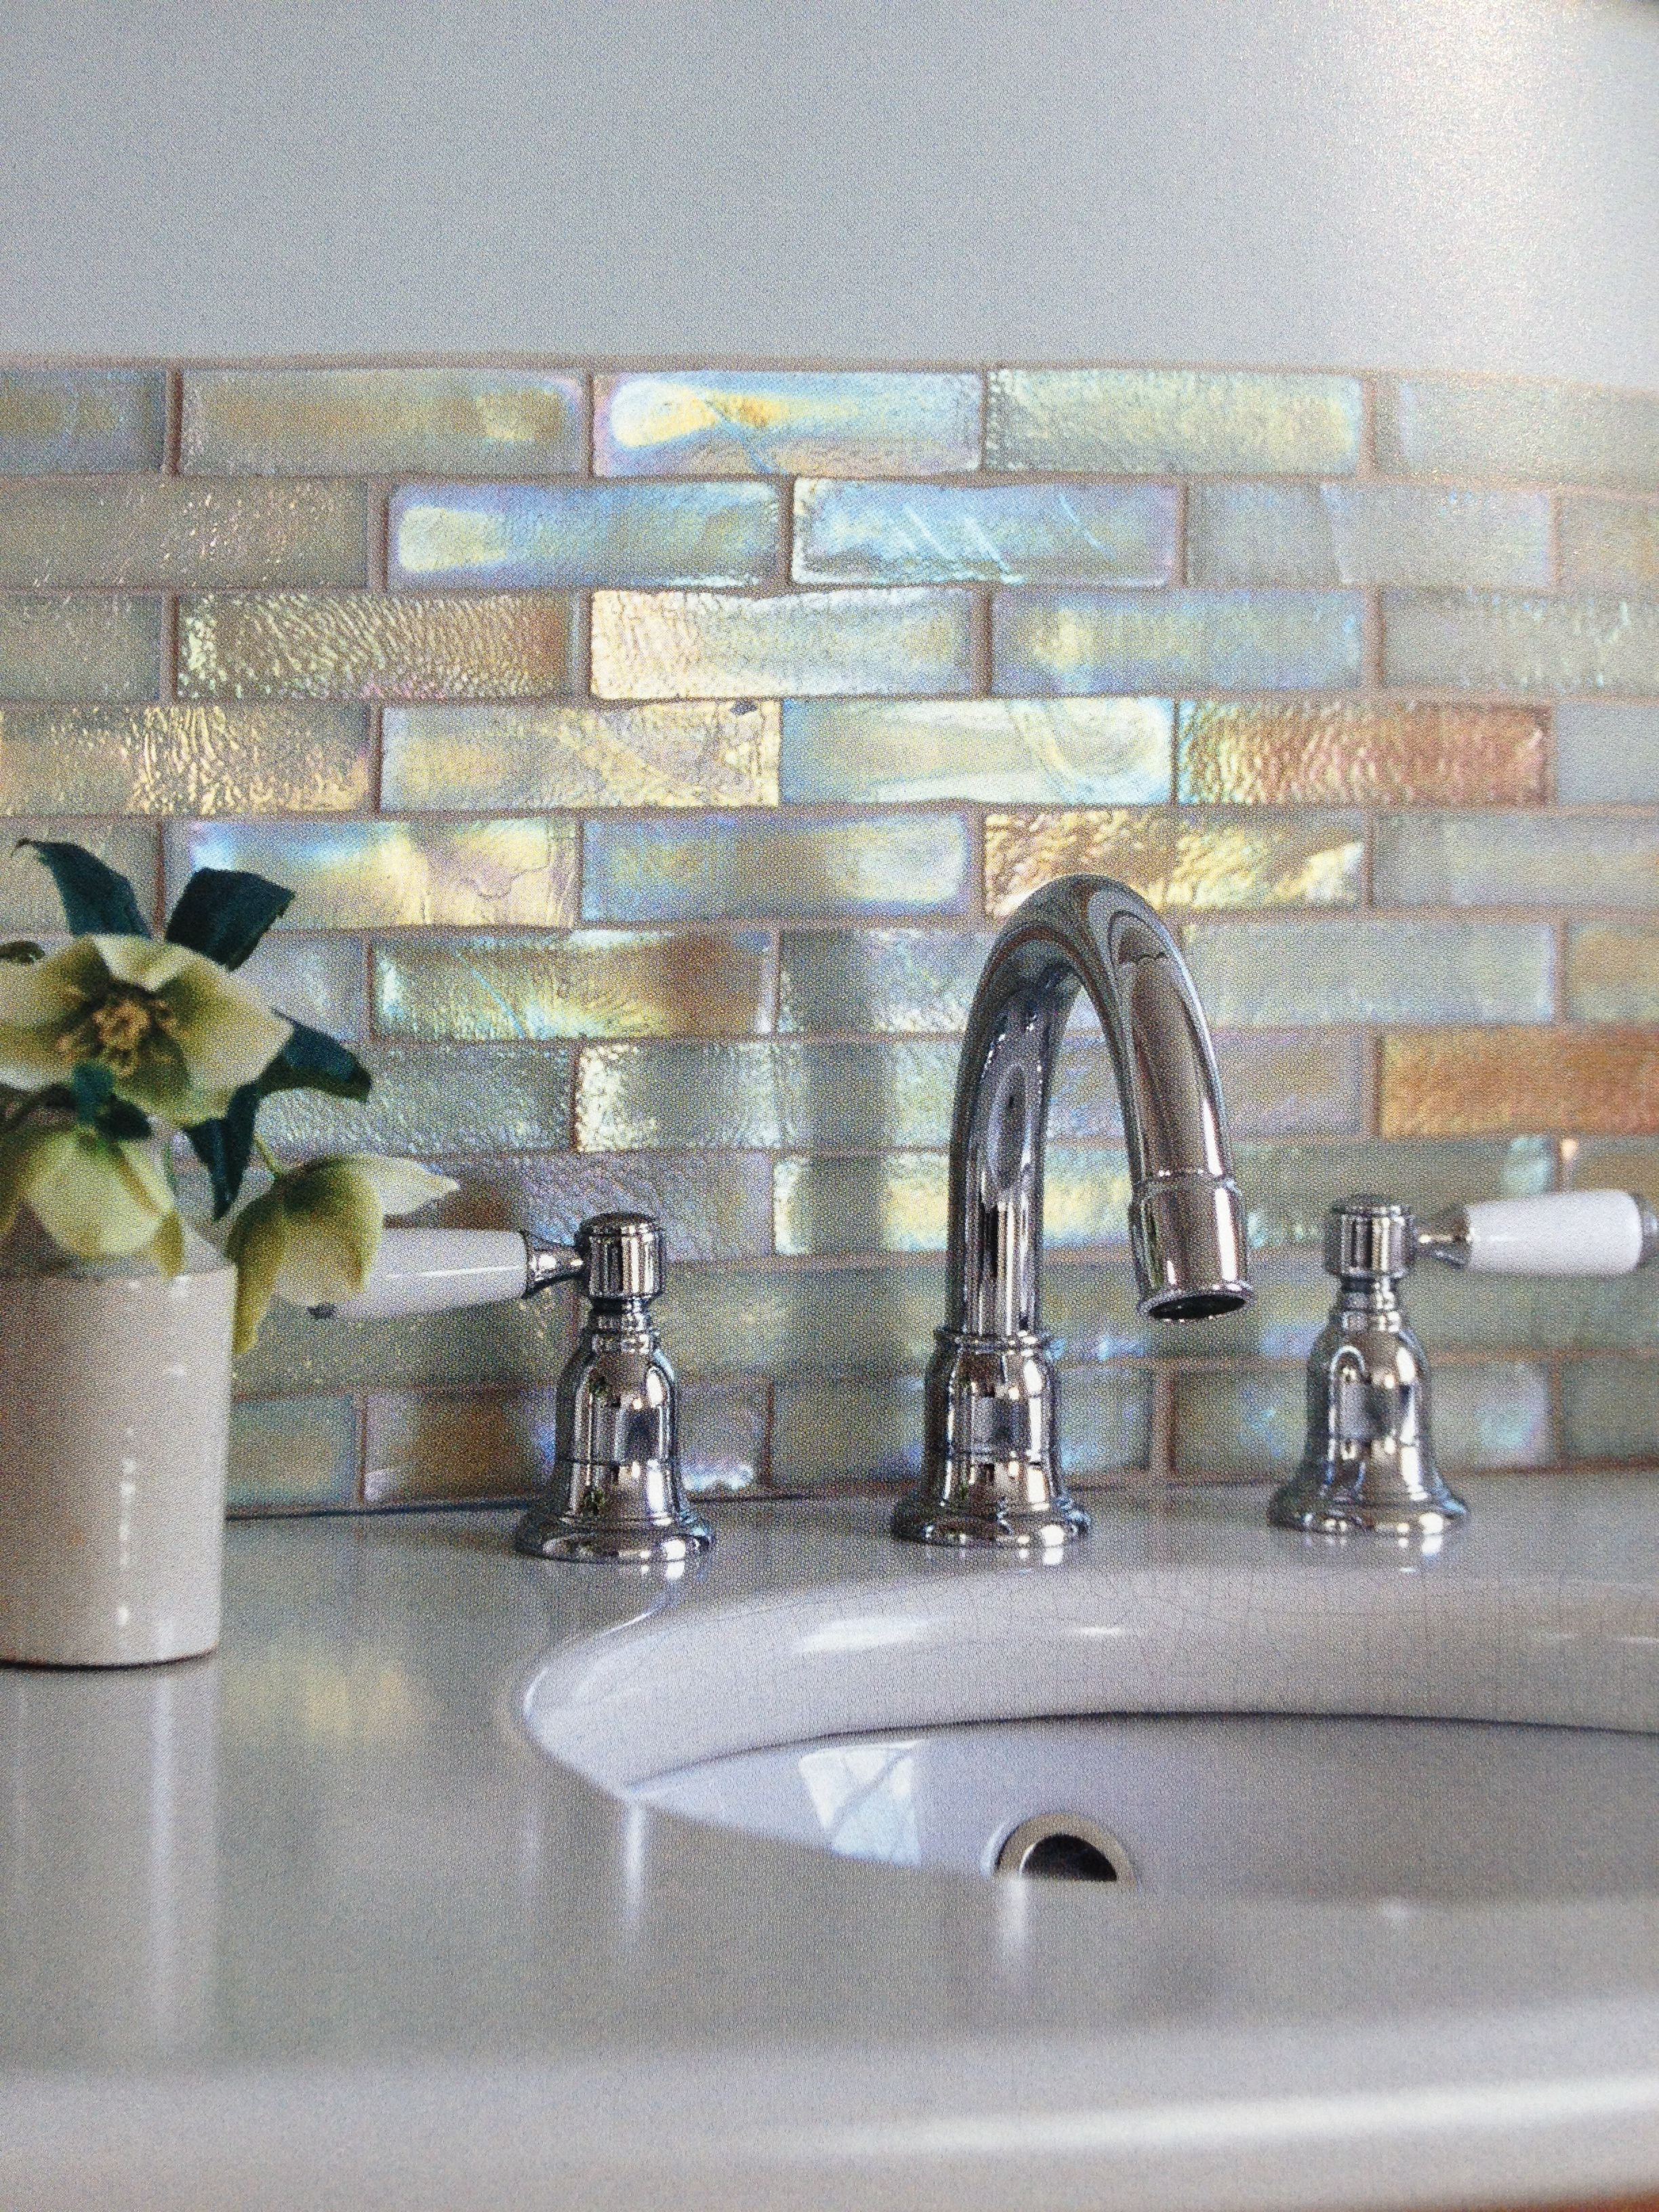 metallic tiles add a touch of personality. we can see these